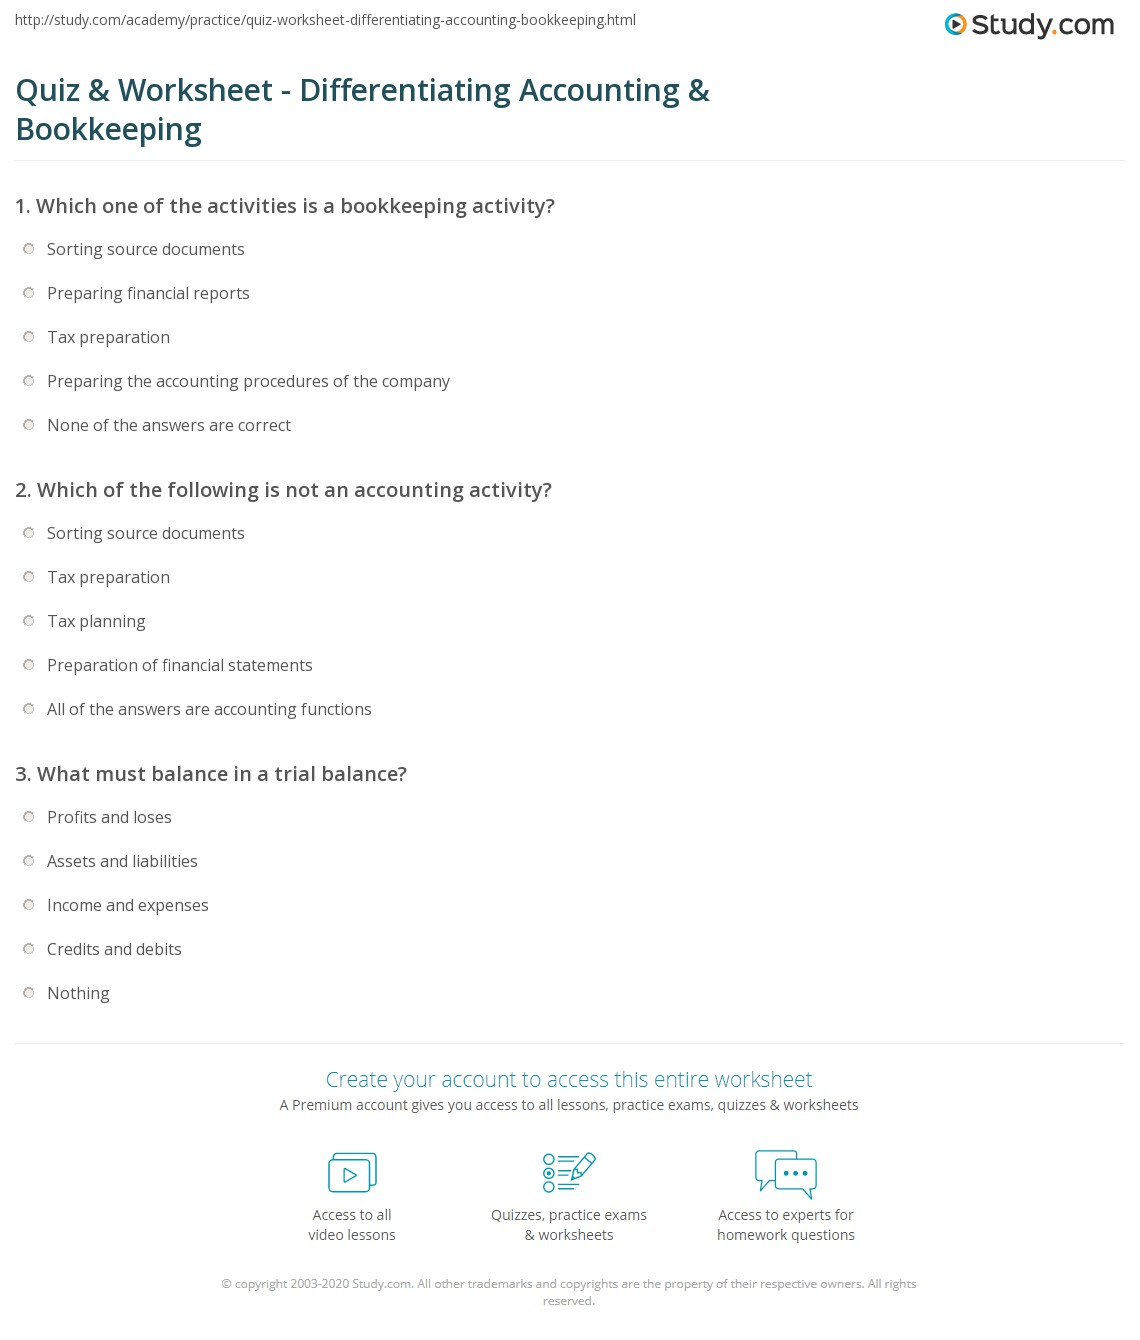 worksheet Worksheet For Accounting quiz worksheet differentiating accounting bookkeeping study com print vs differences and similarities worksheet